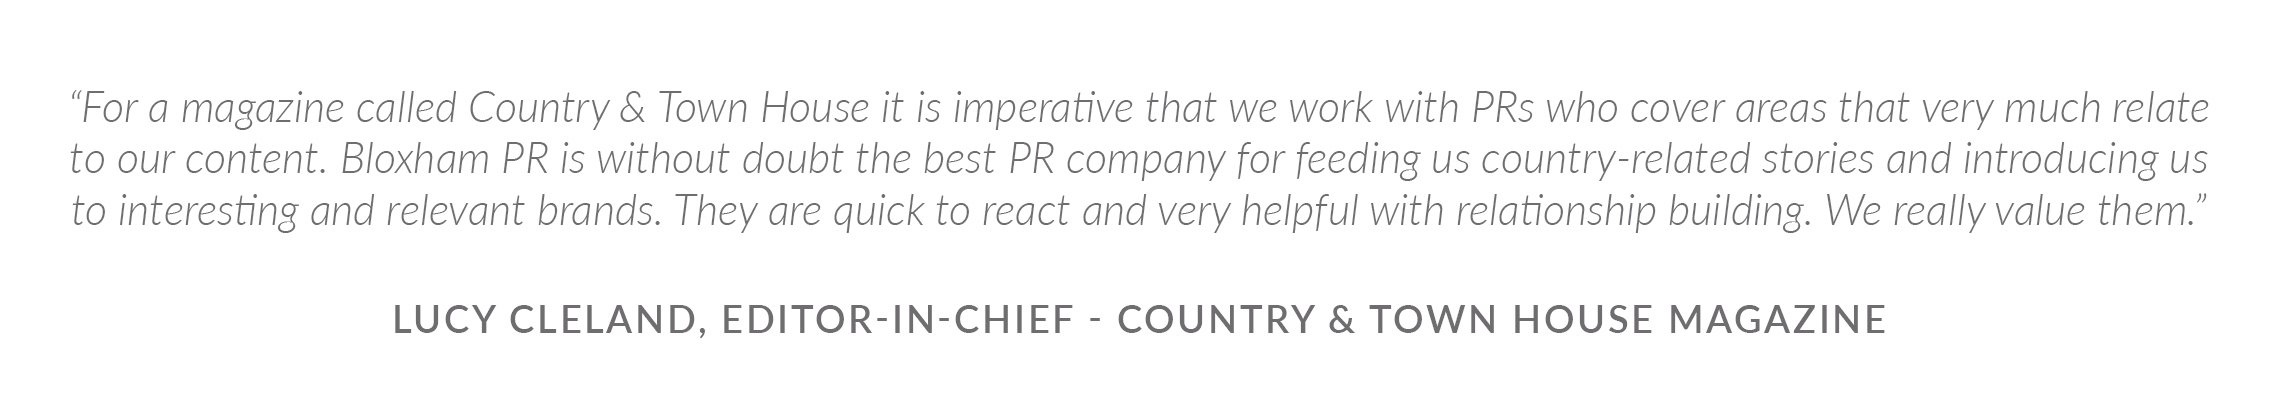 Testimonial - Lucy Cleland, Country & Town House